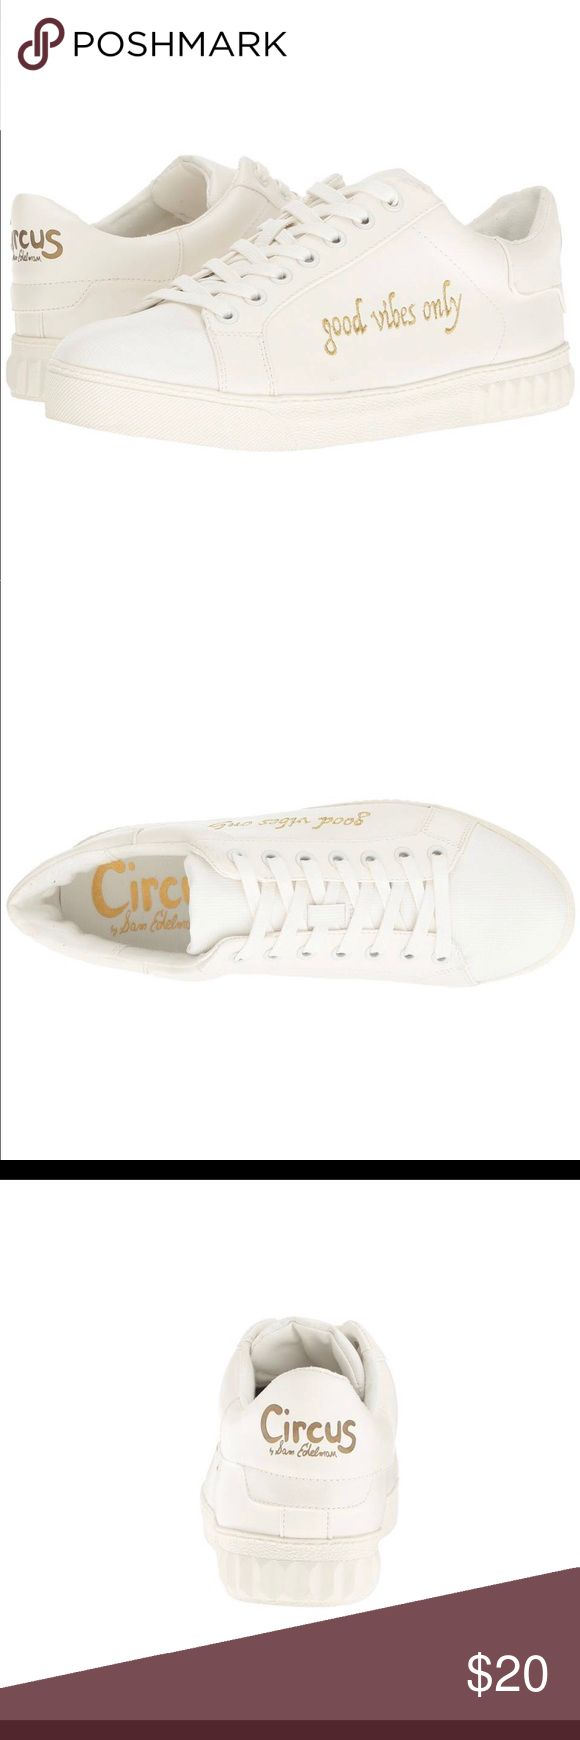 CIRCUS BY SAM EDELMAN SNEAKERS Circus by Sam Edelman Cyrus - Women's Shoes : Bright White (Good Vibes Only) Man-made upper with phrase embroidered along the side. Lace-up construction. Rounded toe. Man-made insole and lining. Man-made sole. Circus by Sam Edelman Shoes Sneakers